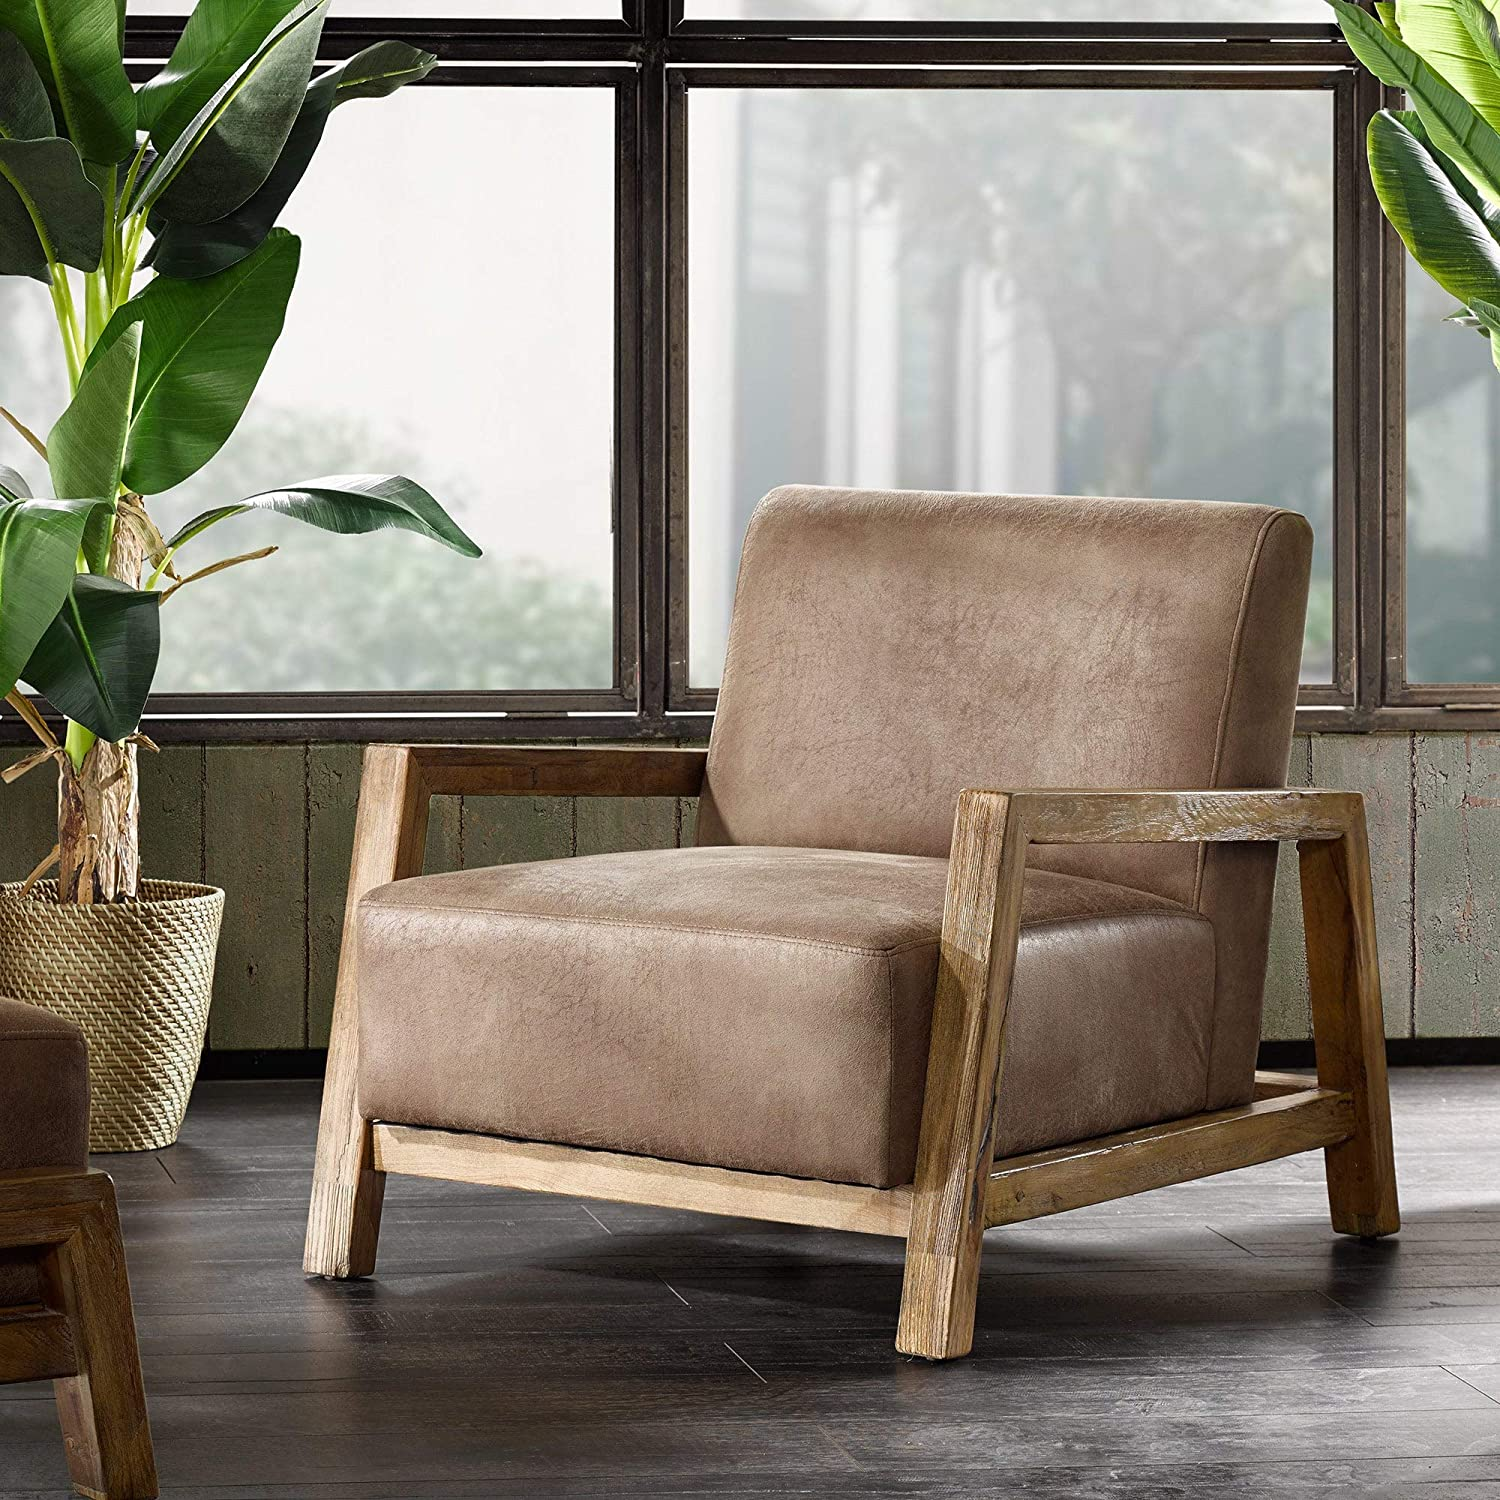 Taupe Lounge Chair Solid Casual Industrial Faux Leather Polyester Wood Natural Finish - 15 accent chairs that make a serious style statement